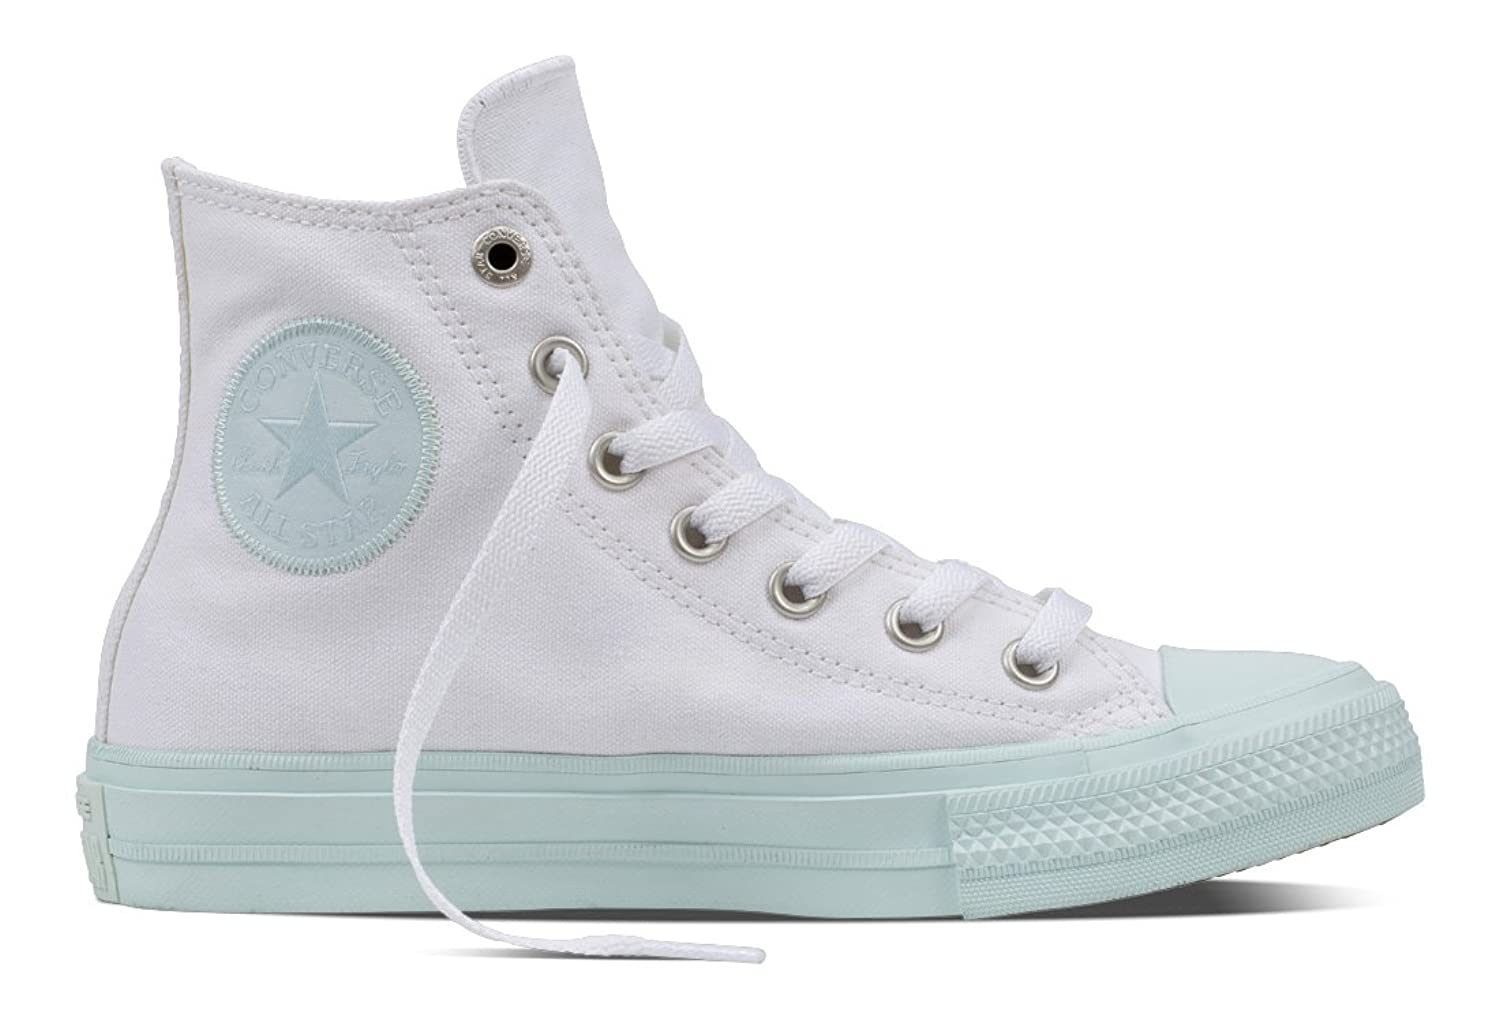 Converse All Star Ii Zapatillas Unisex adulto